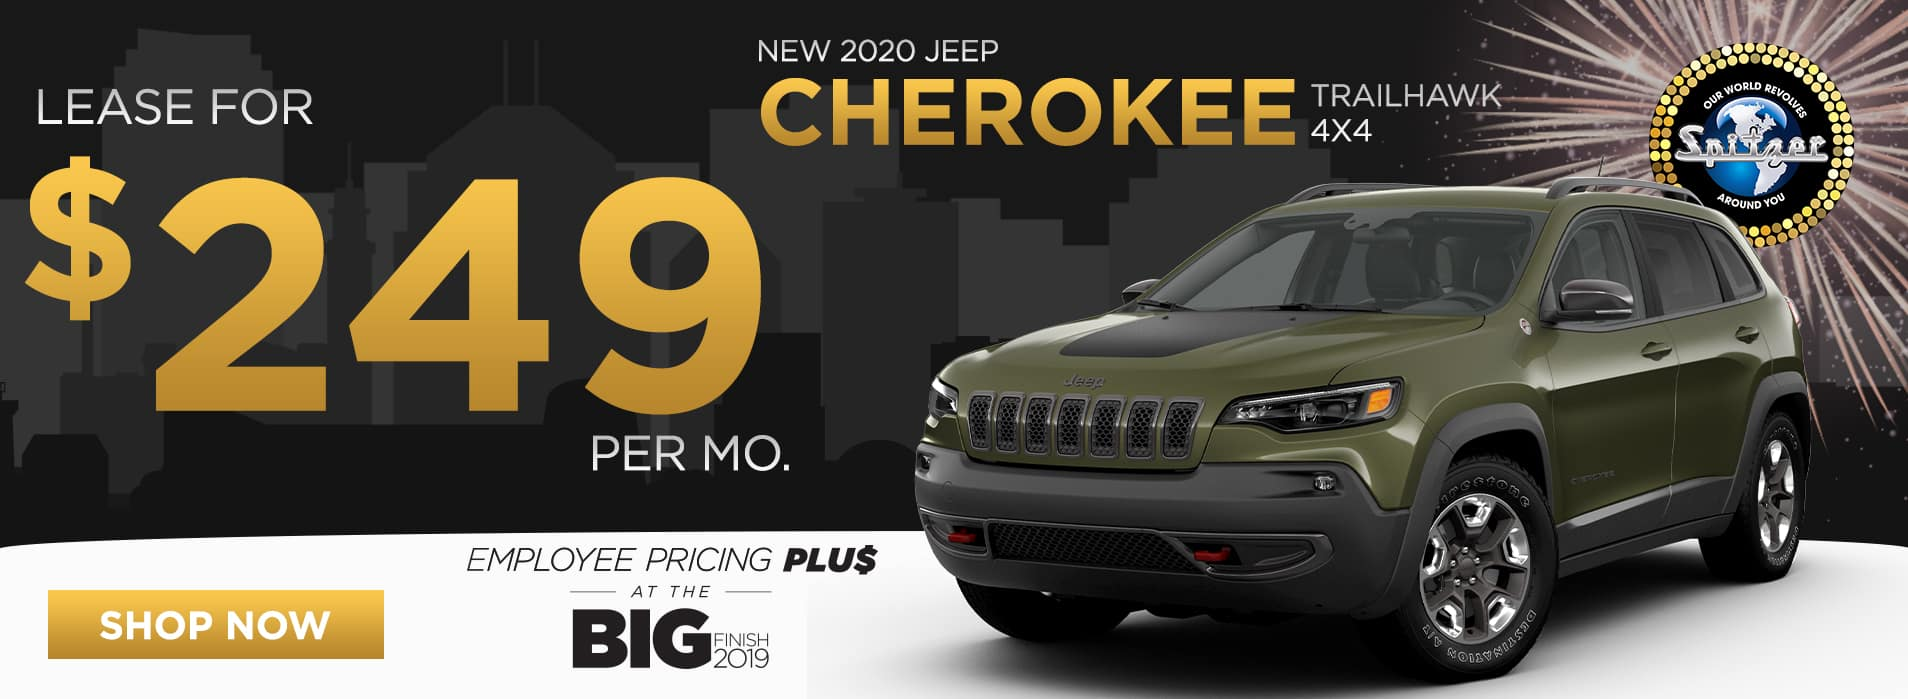 Cherokee   Lease for $249 per mo